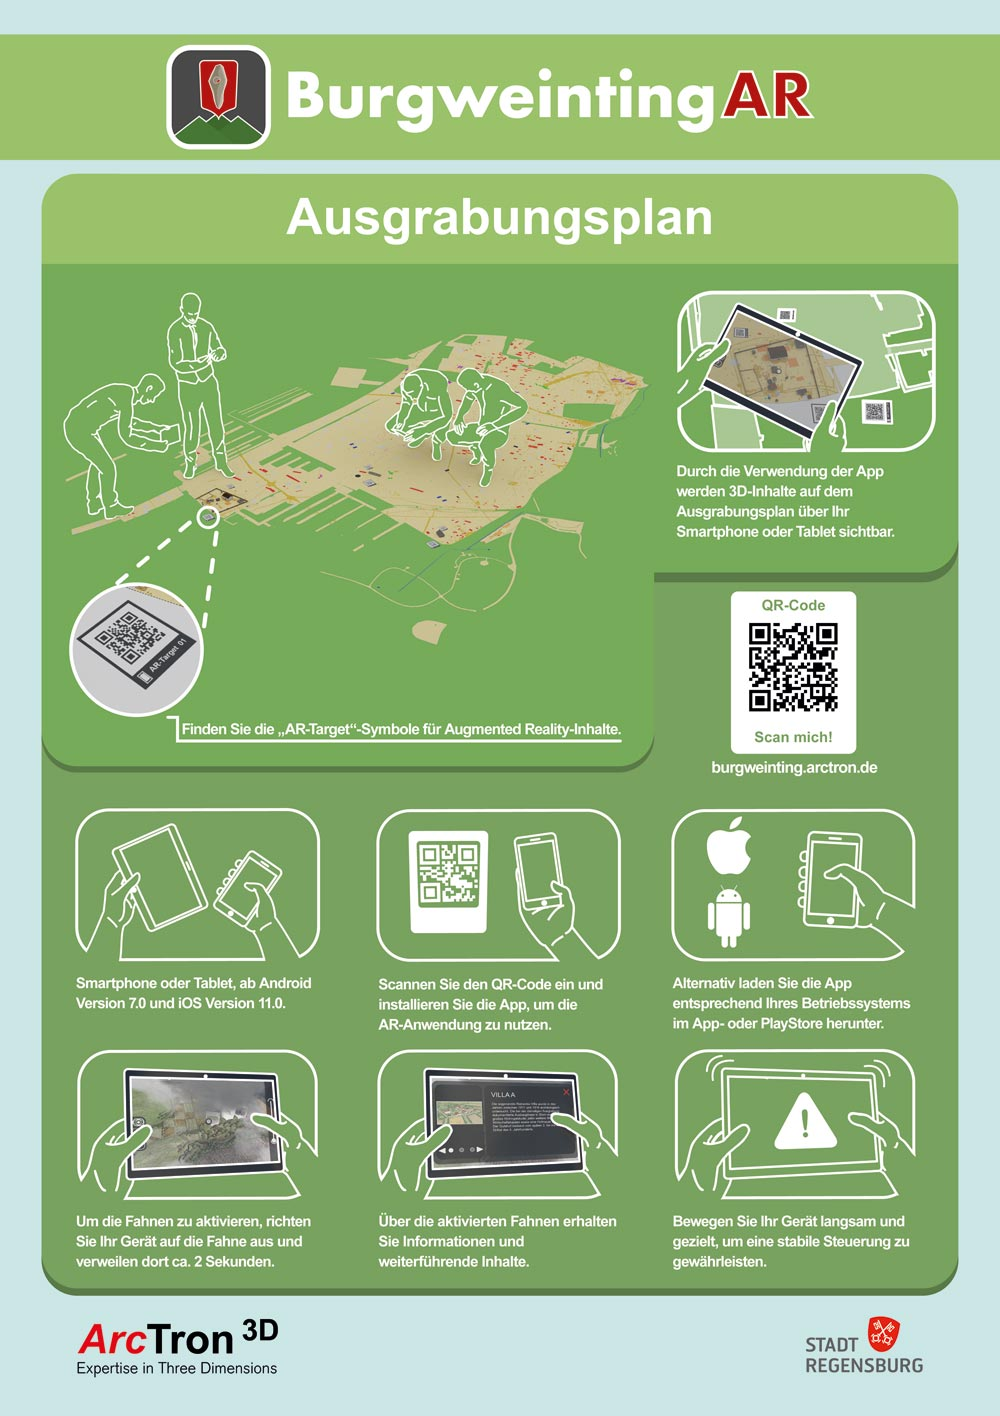 Instructions for the photo flooring with Augmented Reality content - using your own smartphone or tablet.